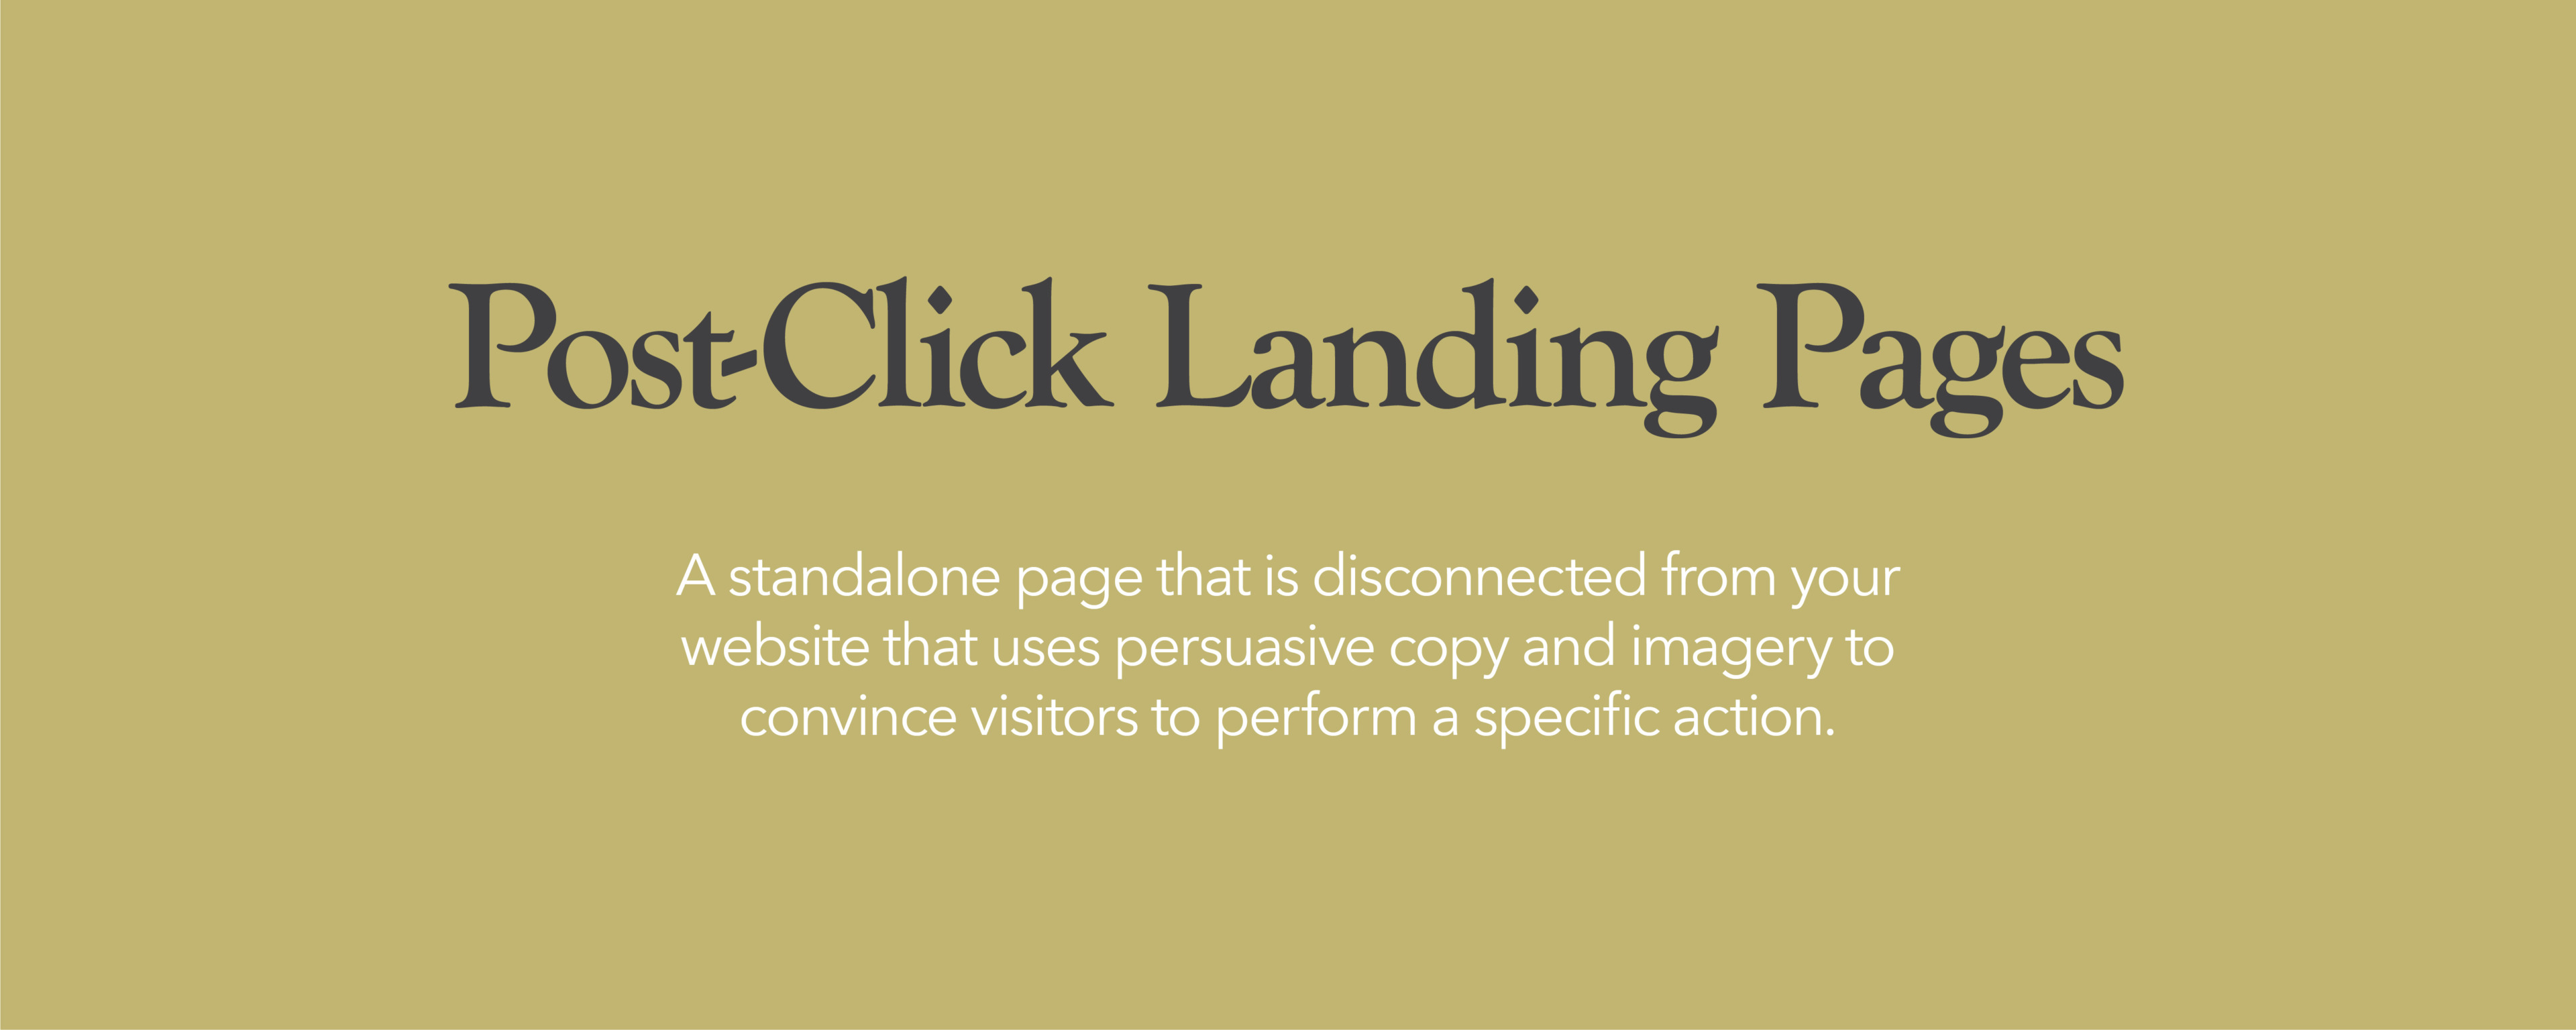 Post-Click Landing Pages